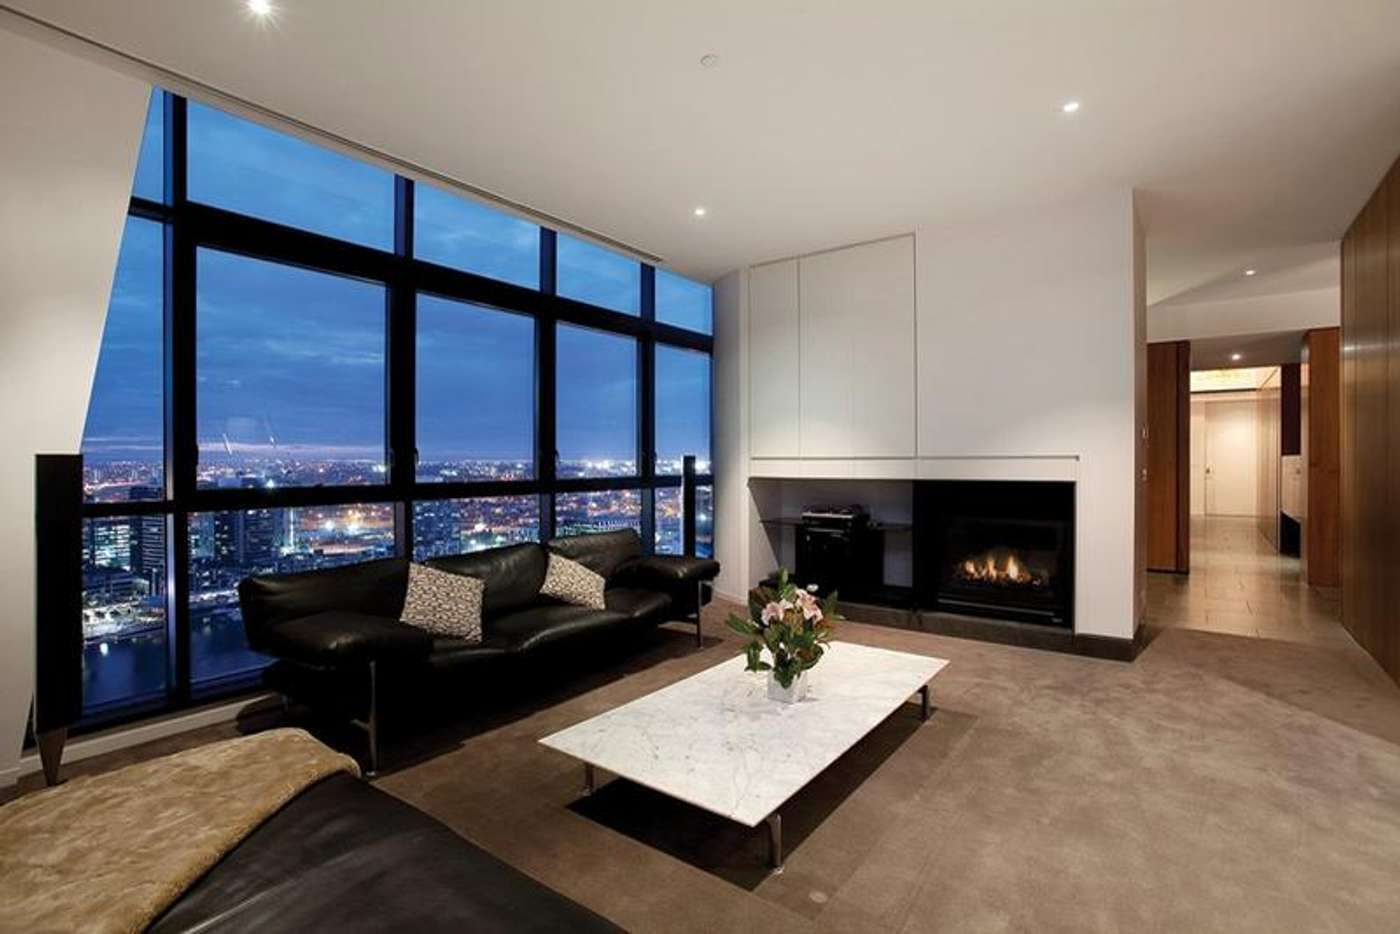 Fifth view of Homely house listing, 301/55 Victoria Harbour Promenade, Docklands VIC 3008